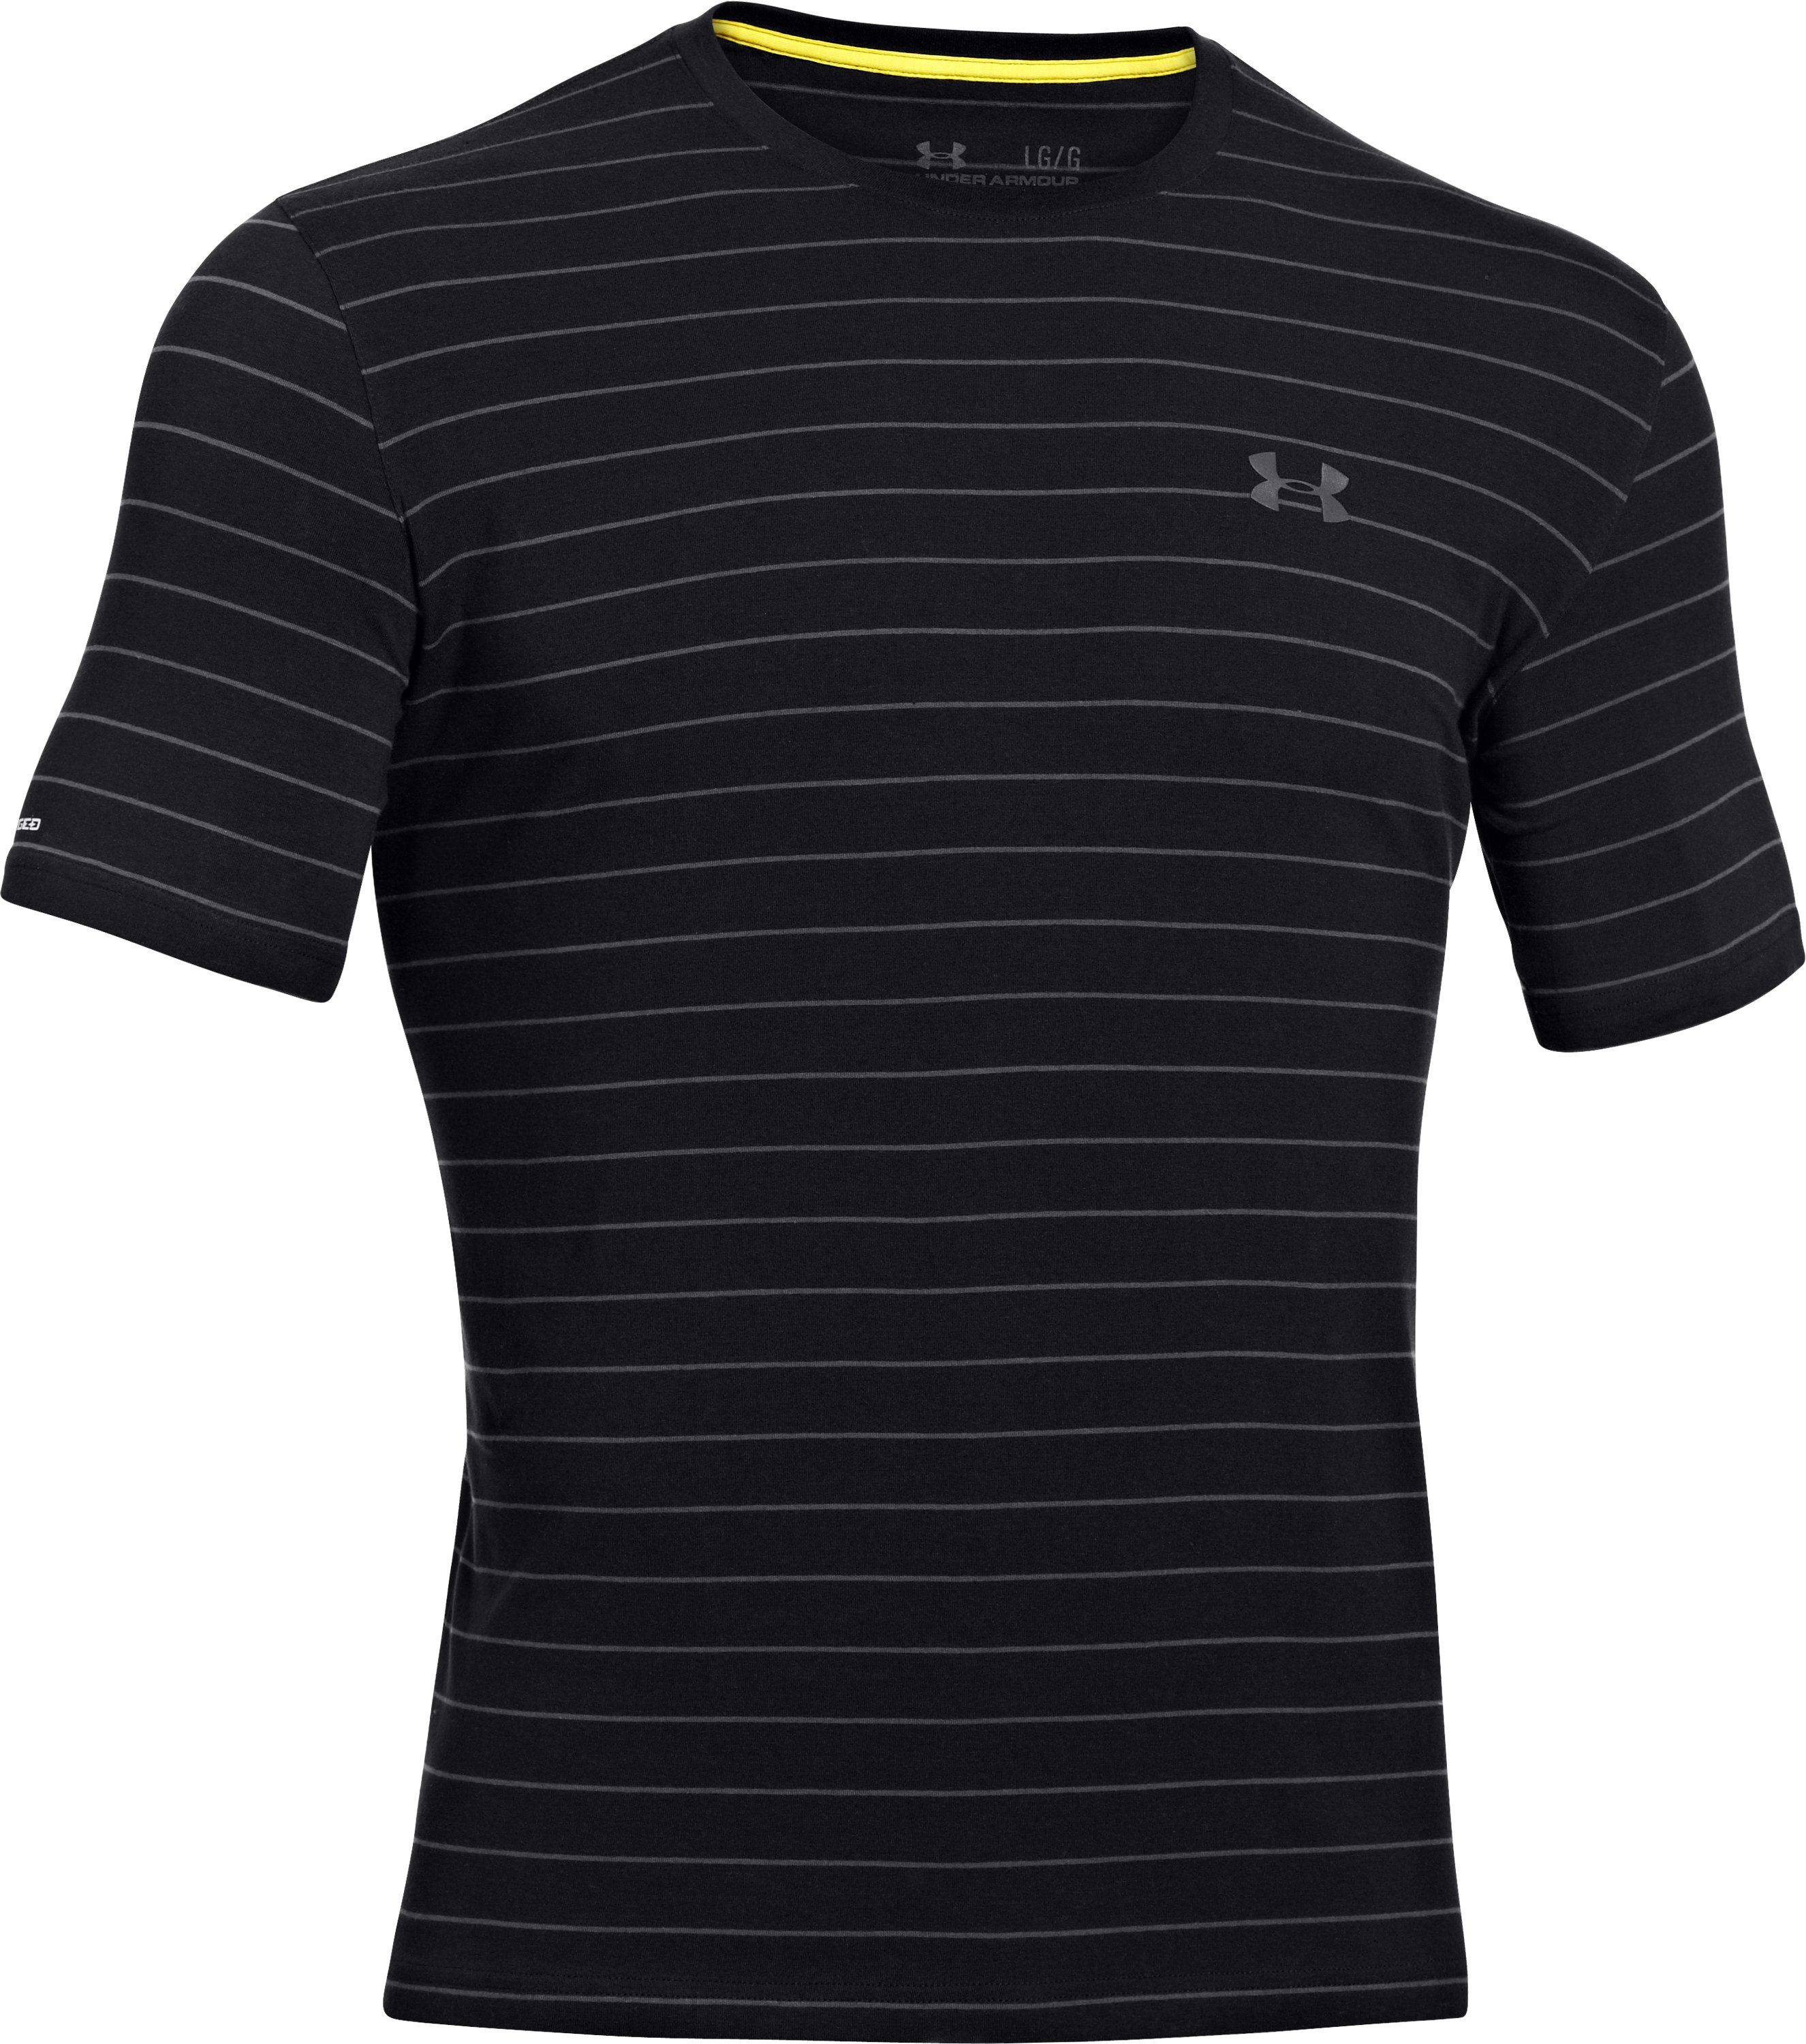 Men's Charged Cotton® Pinstripe T-Shirt, Black